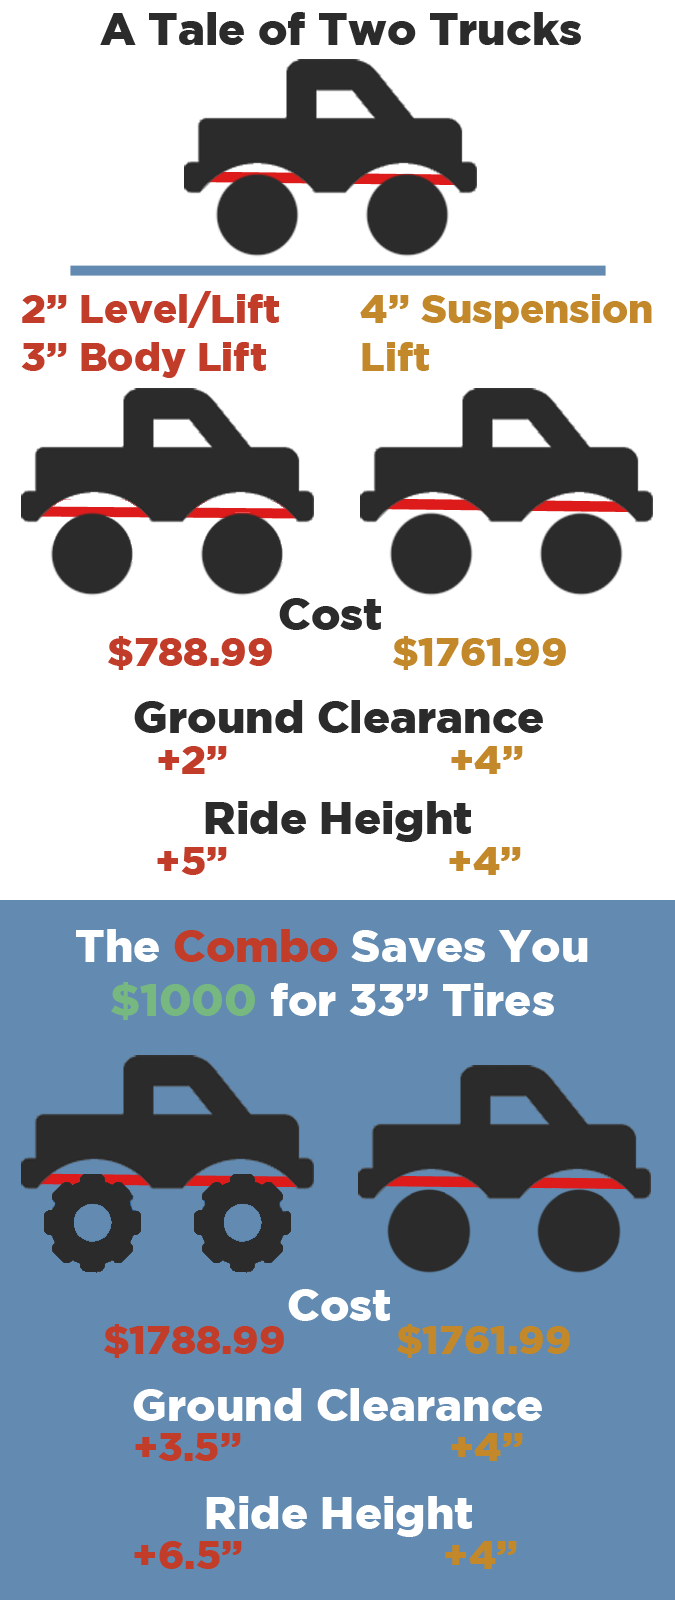 tale of two trucks lift kits and tires infographic